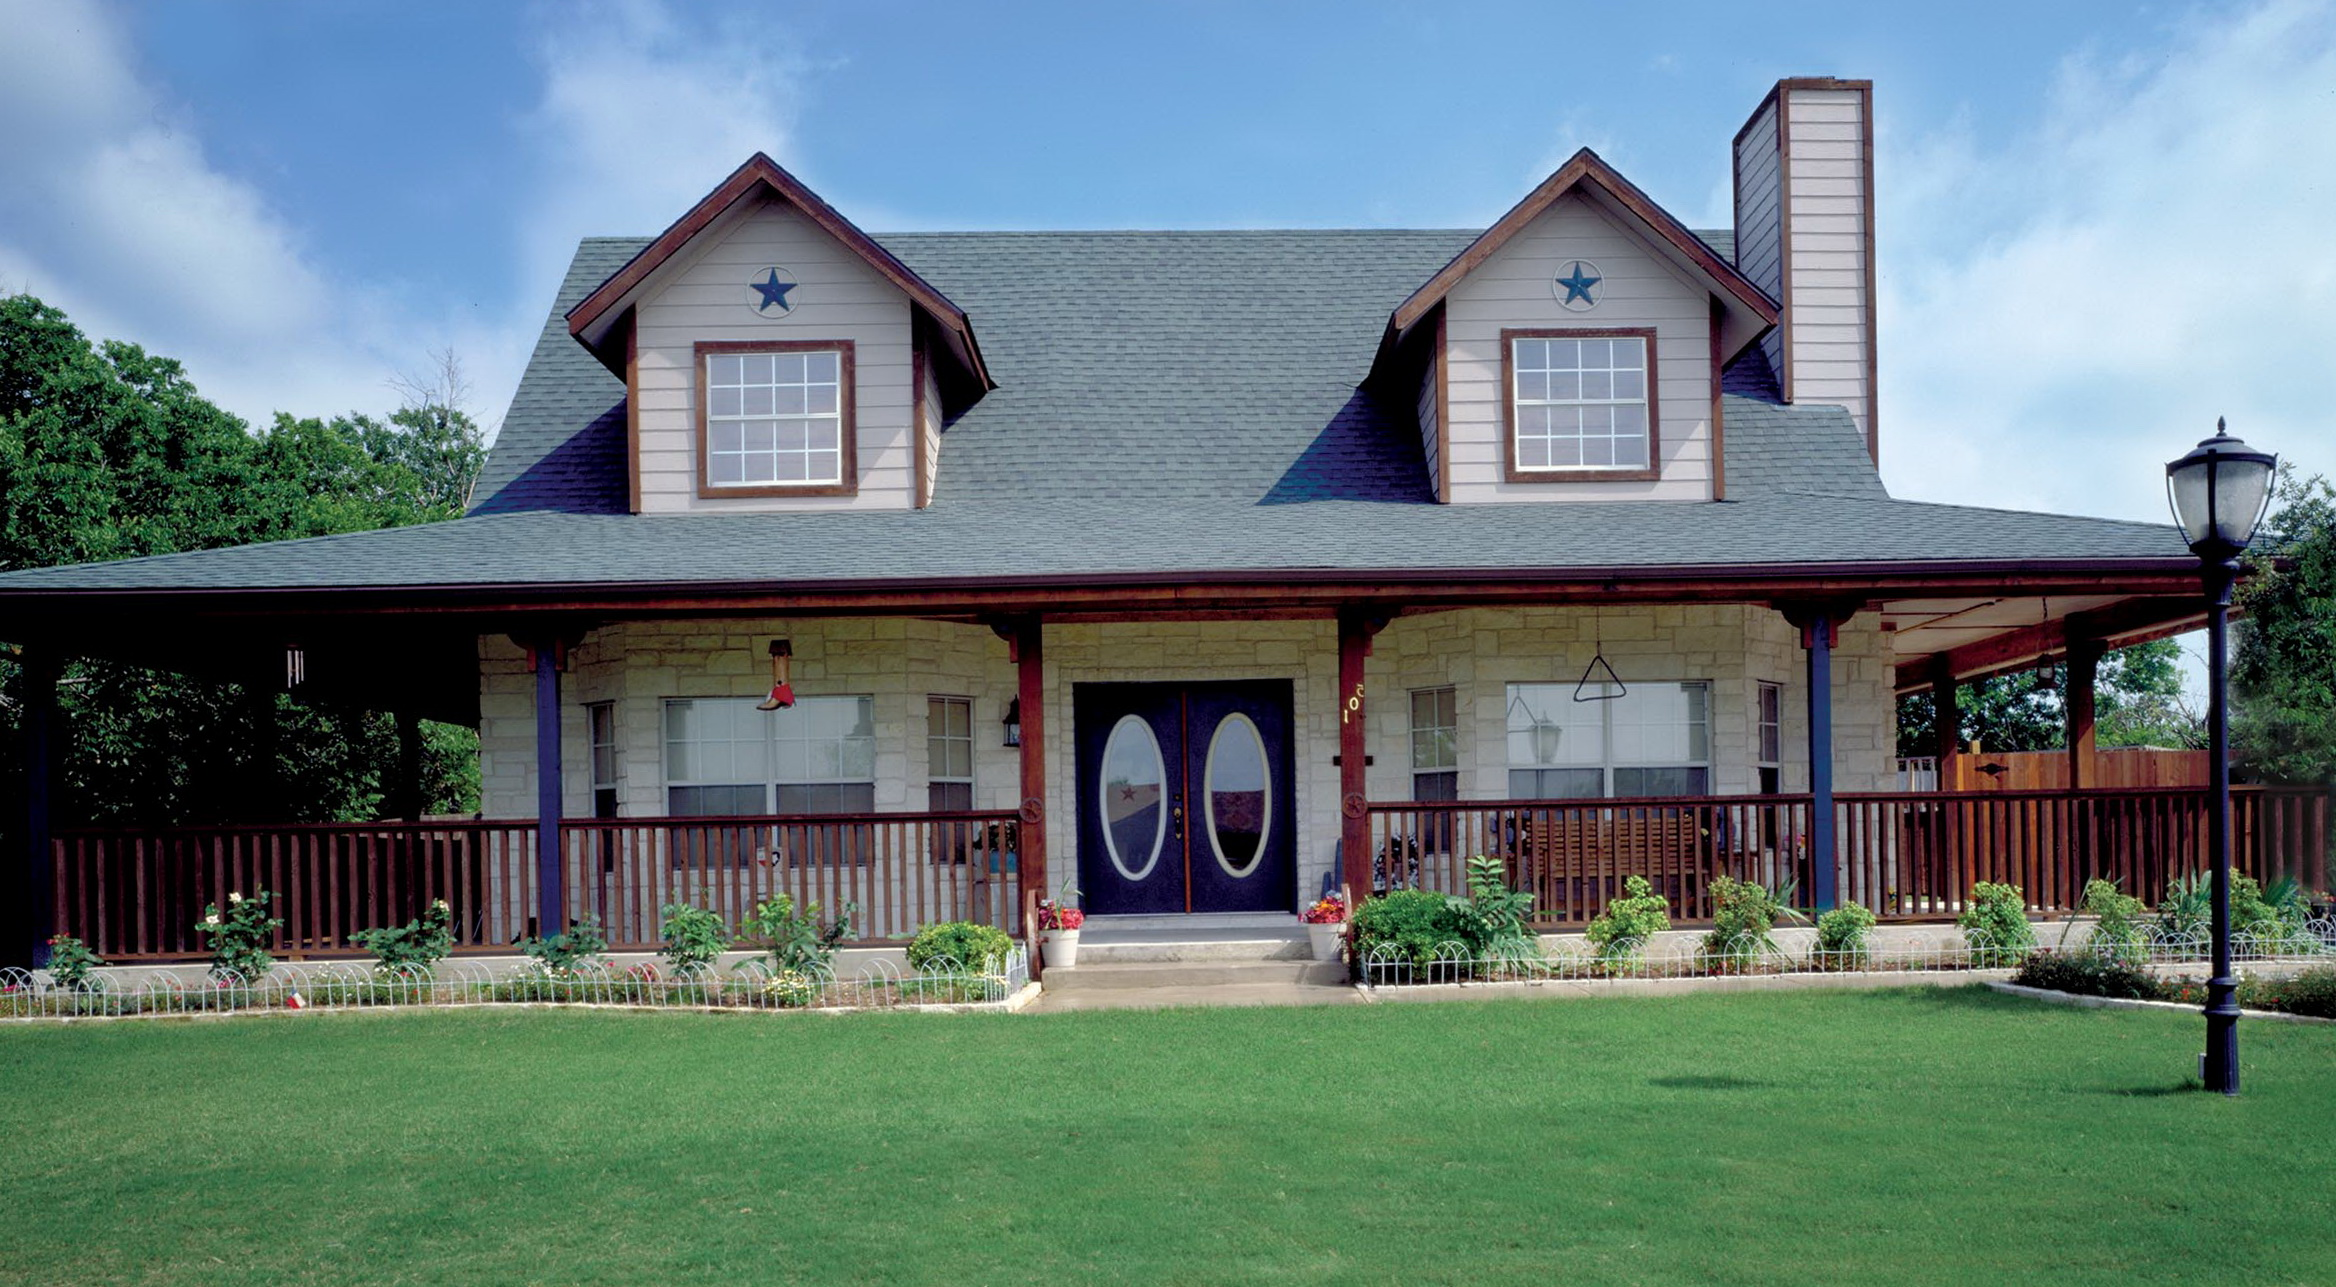 Country Style House Plans With Wrap Around Porches Home Design Ideas Part 34